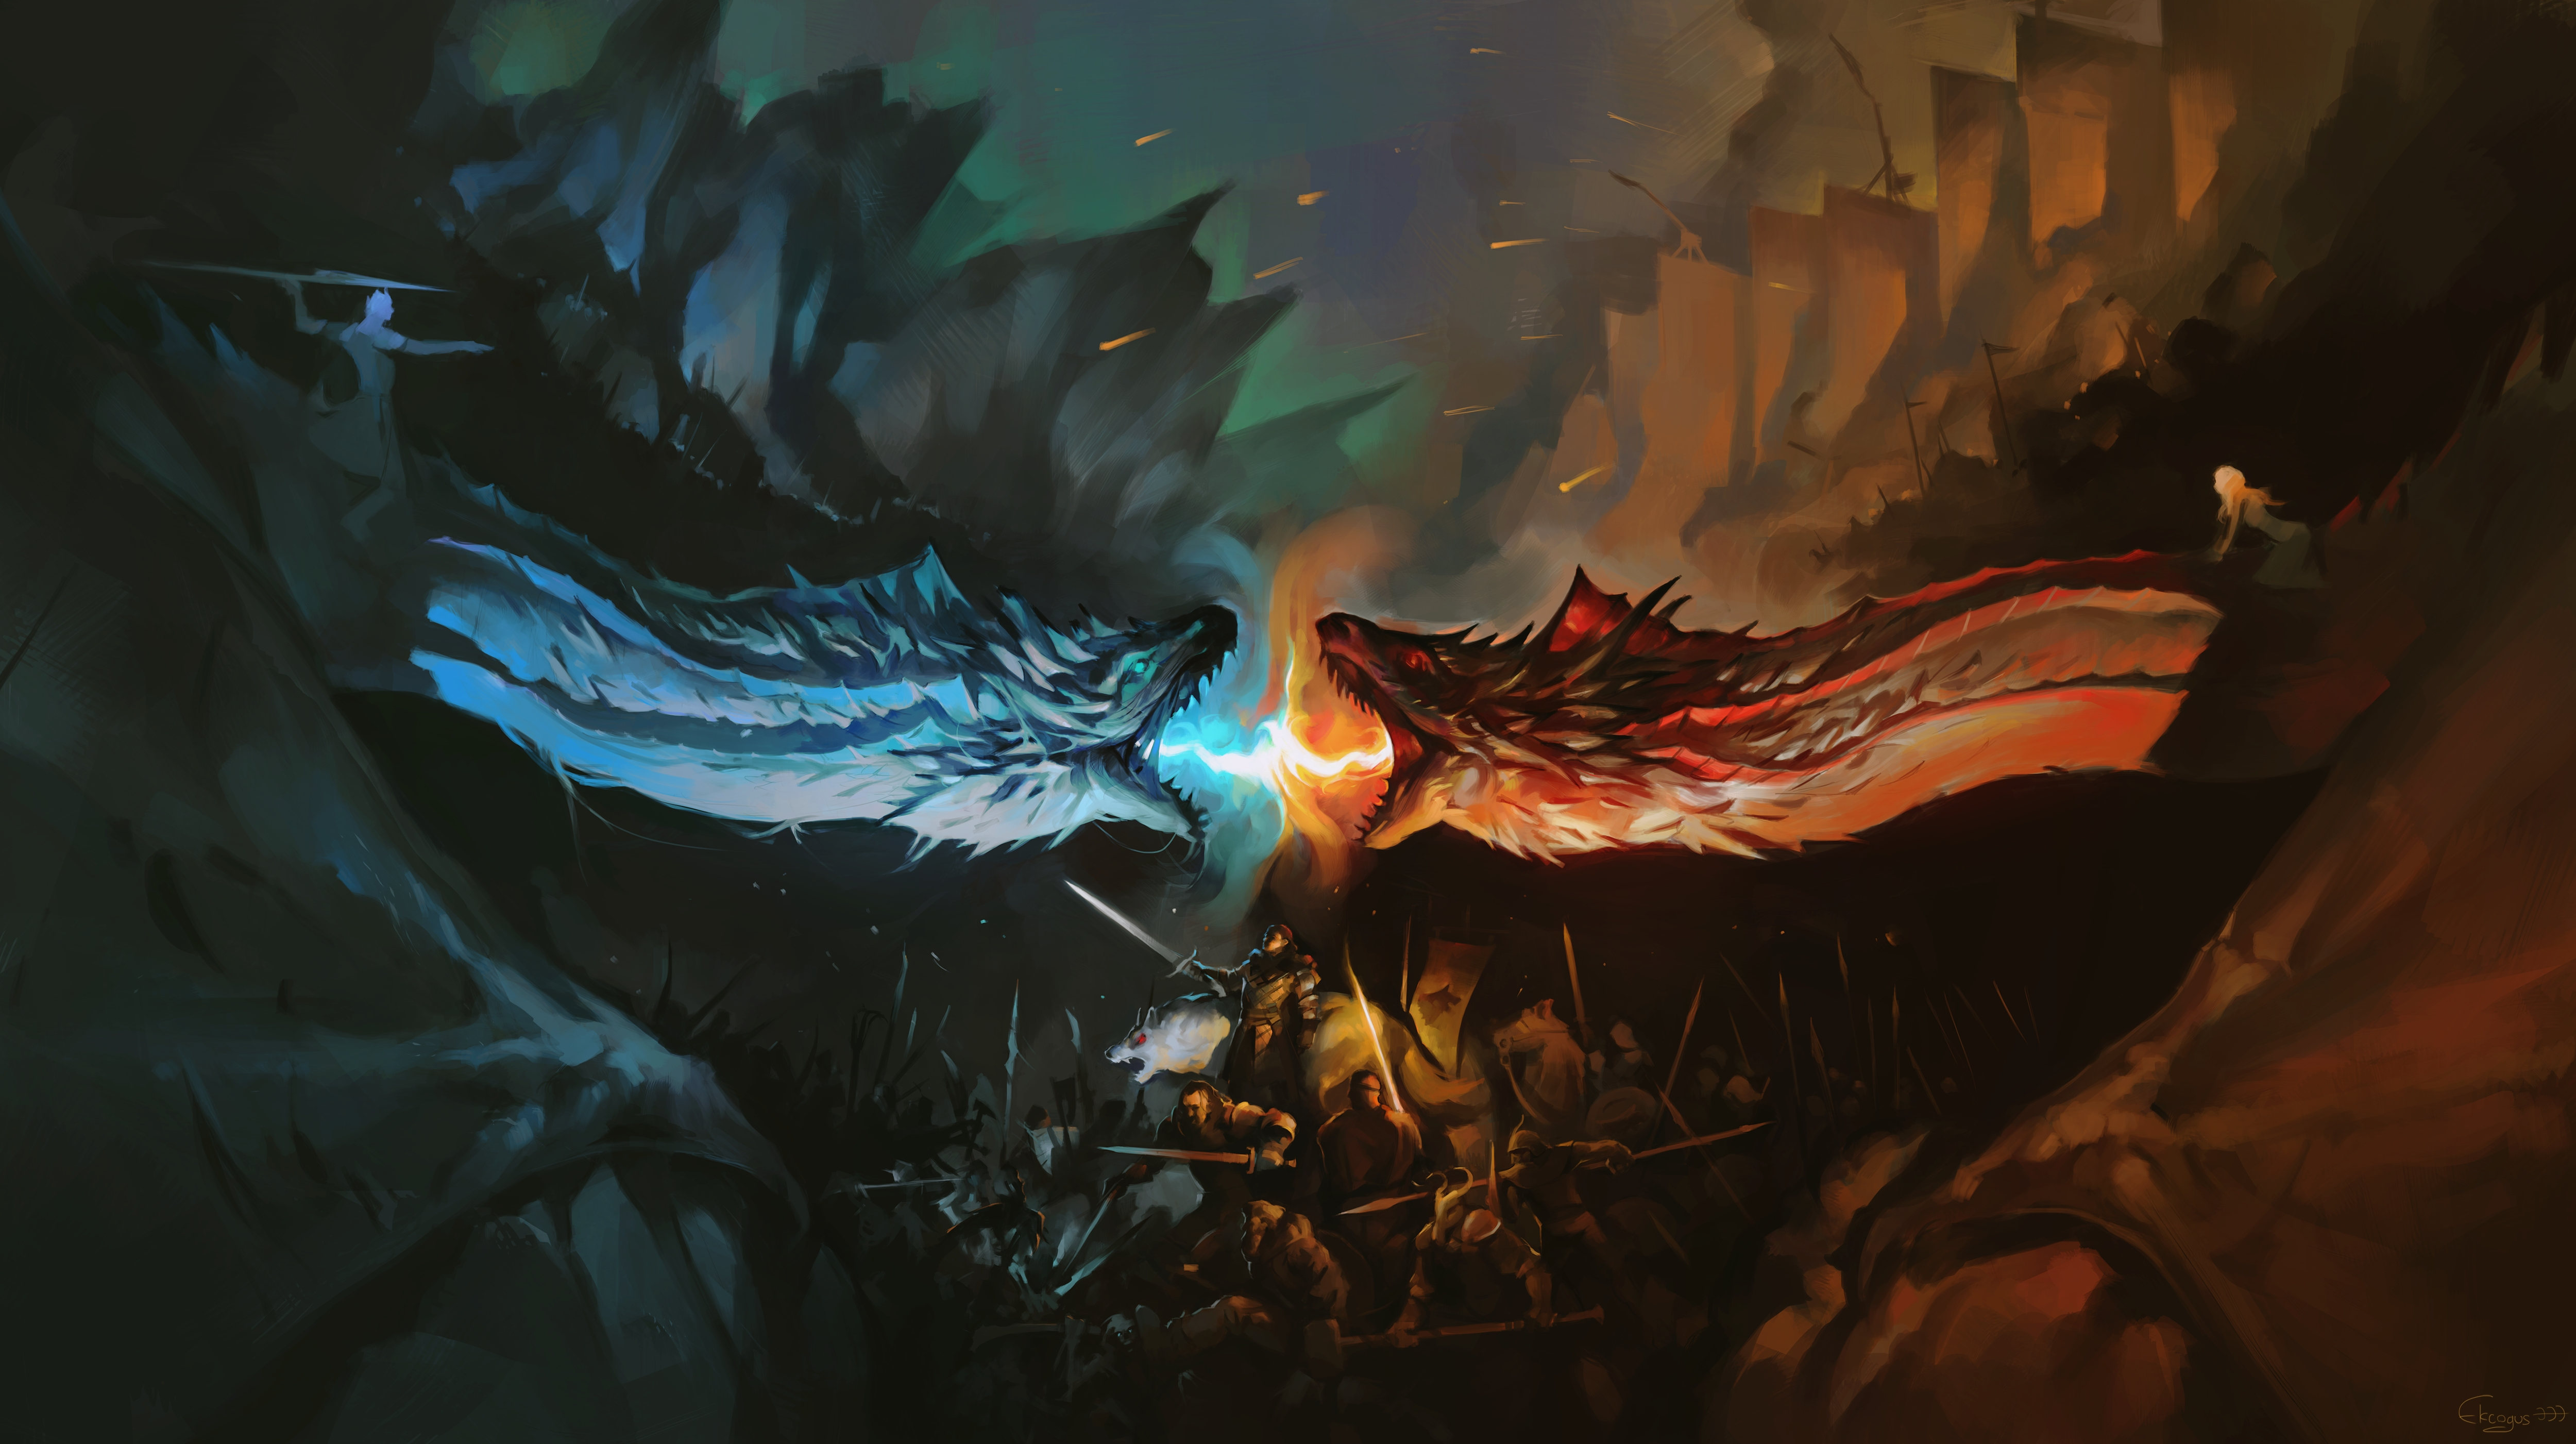 Wallpaper Dragon Battle Fire Vs Ice Game Of Thrones